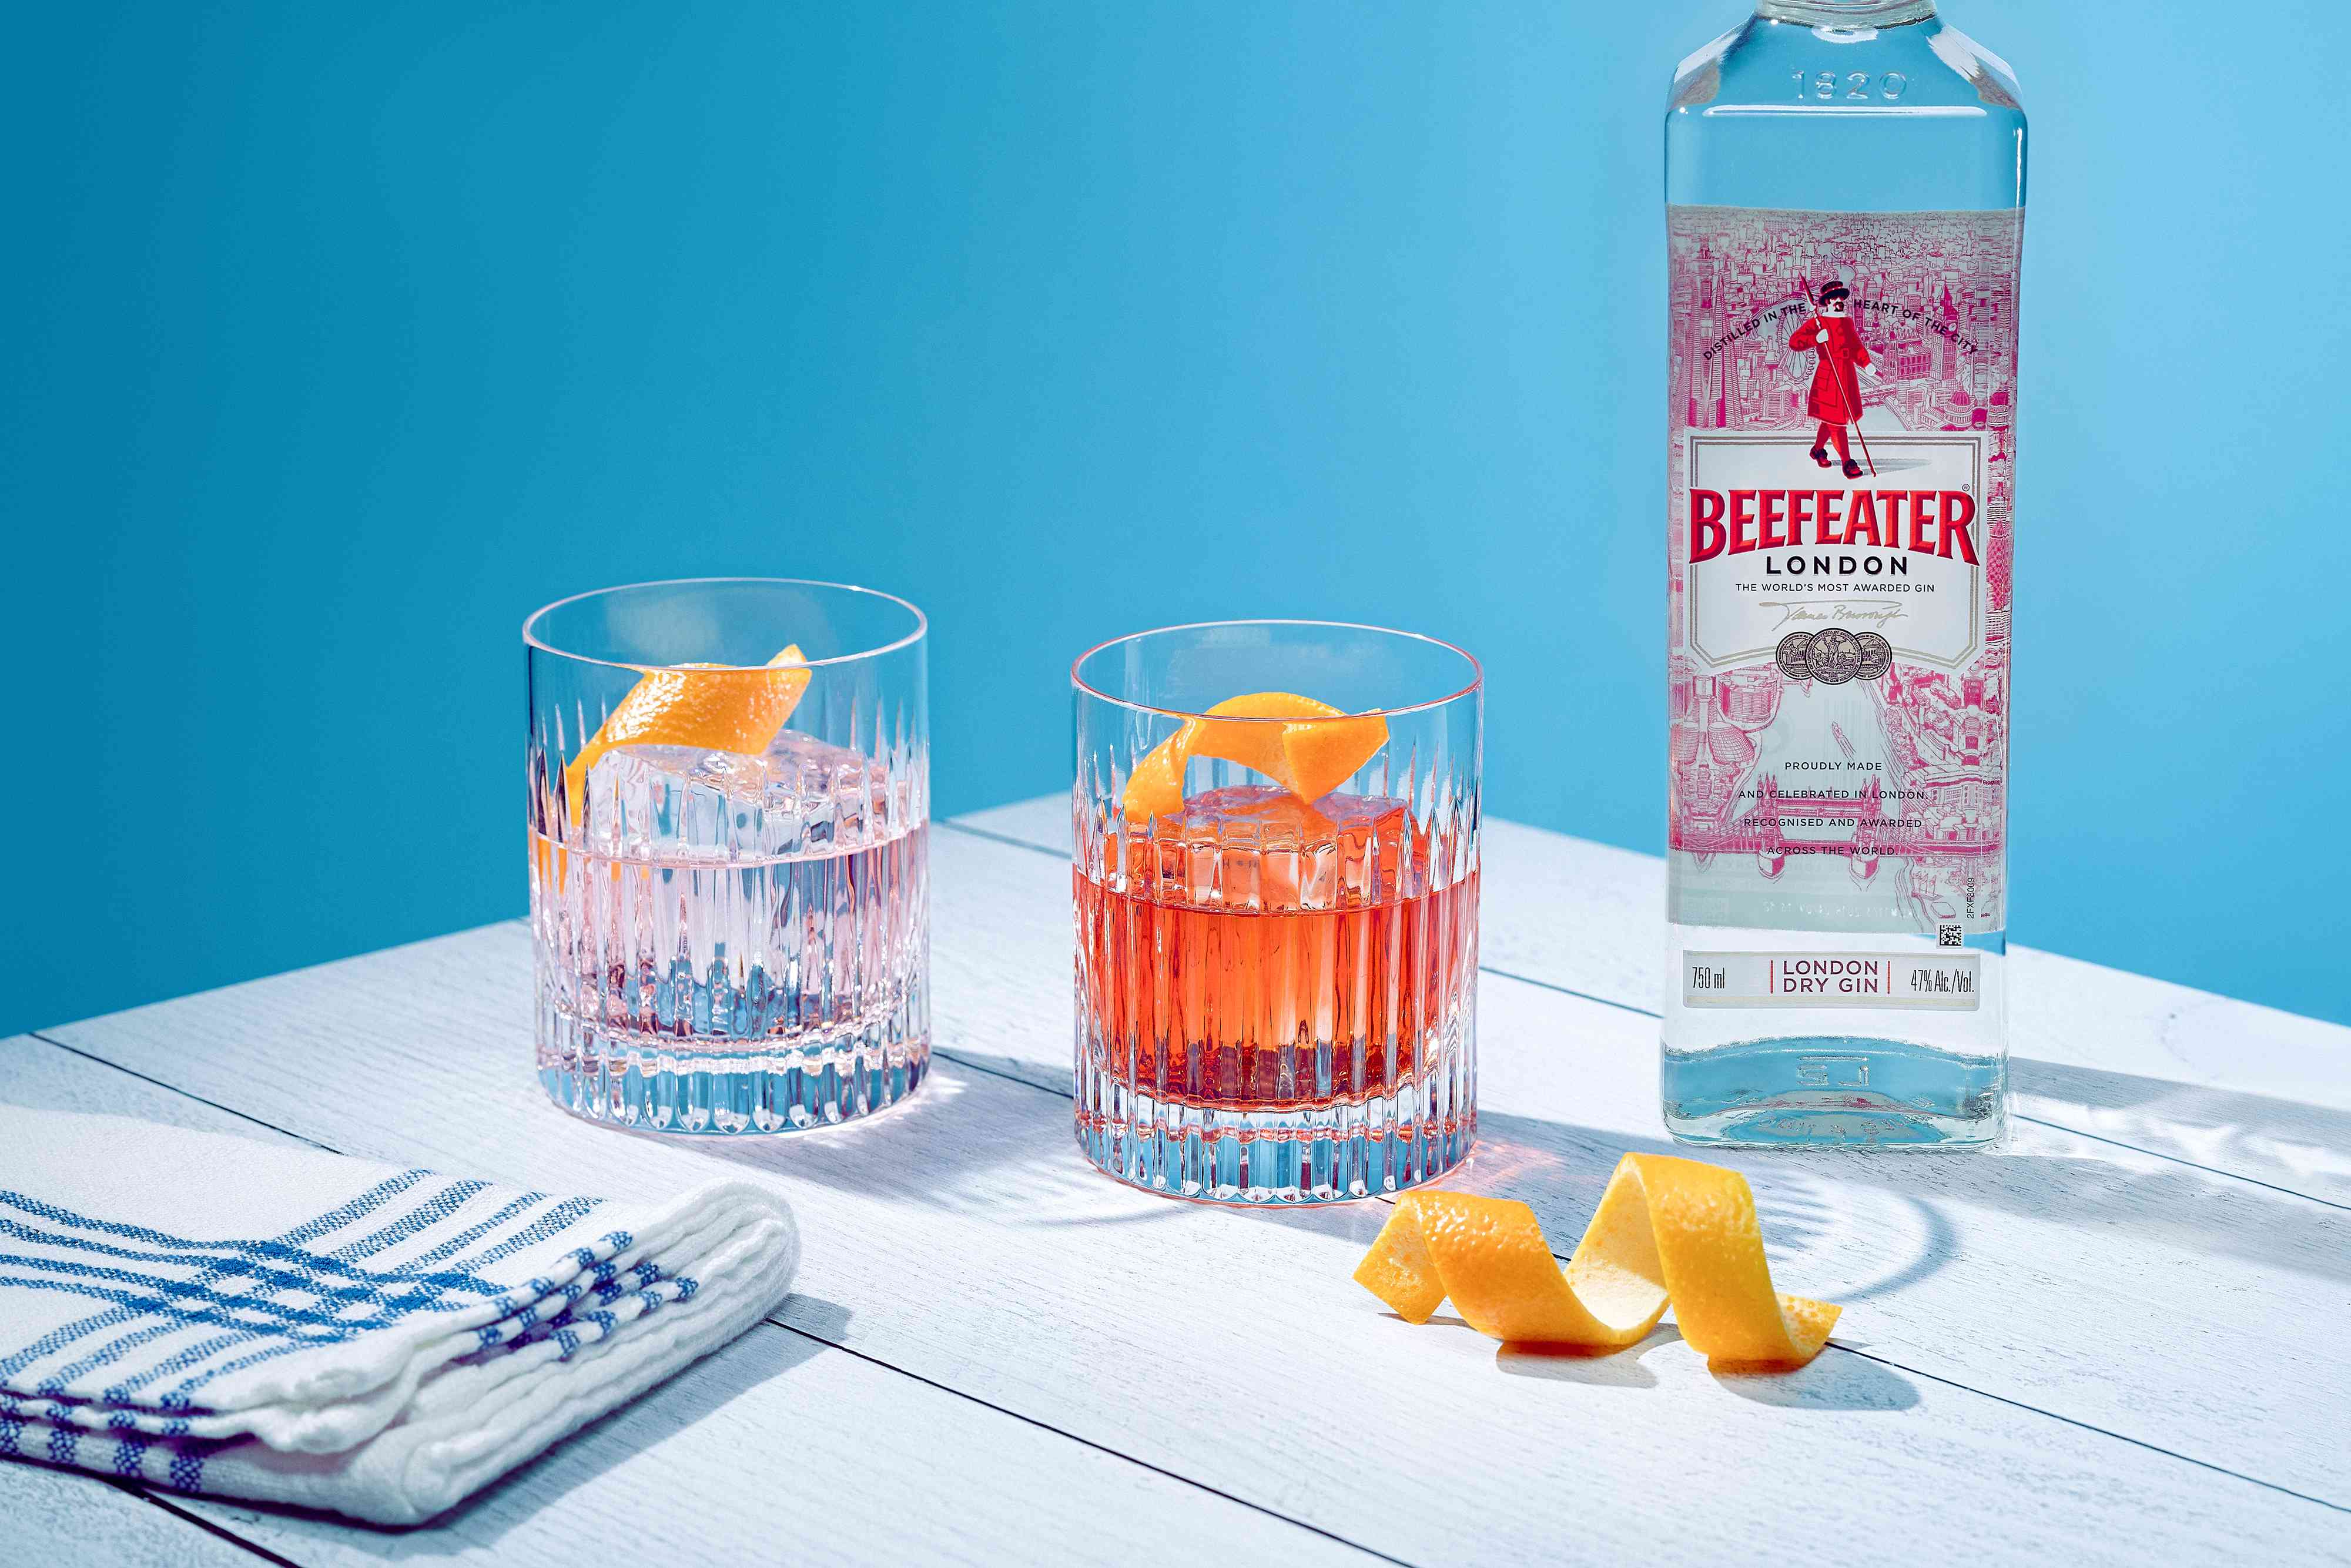 Beefeater London Dry Gin Negroni Cocktail